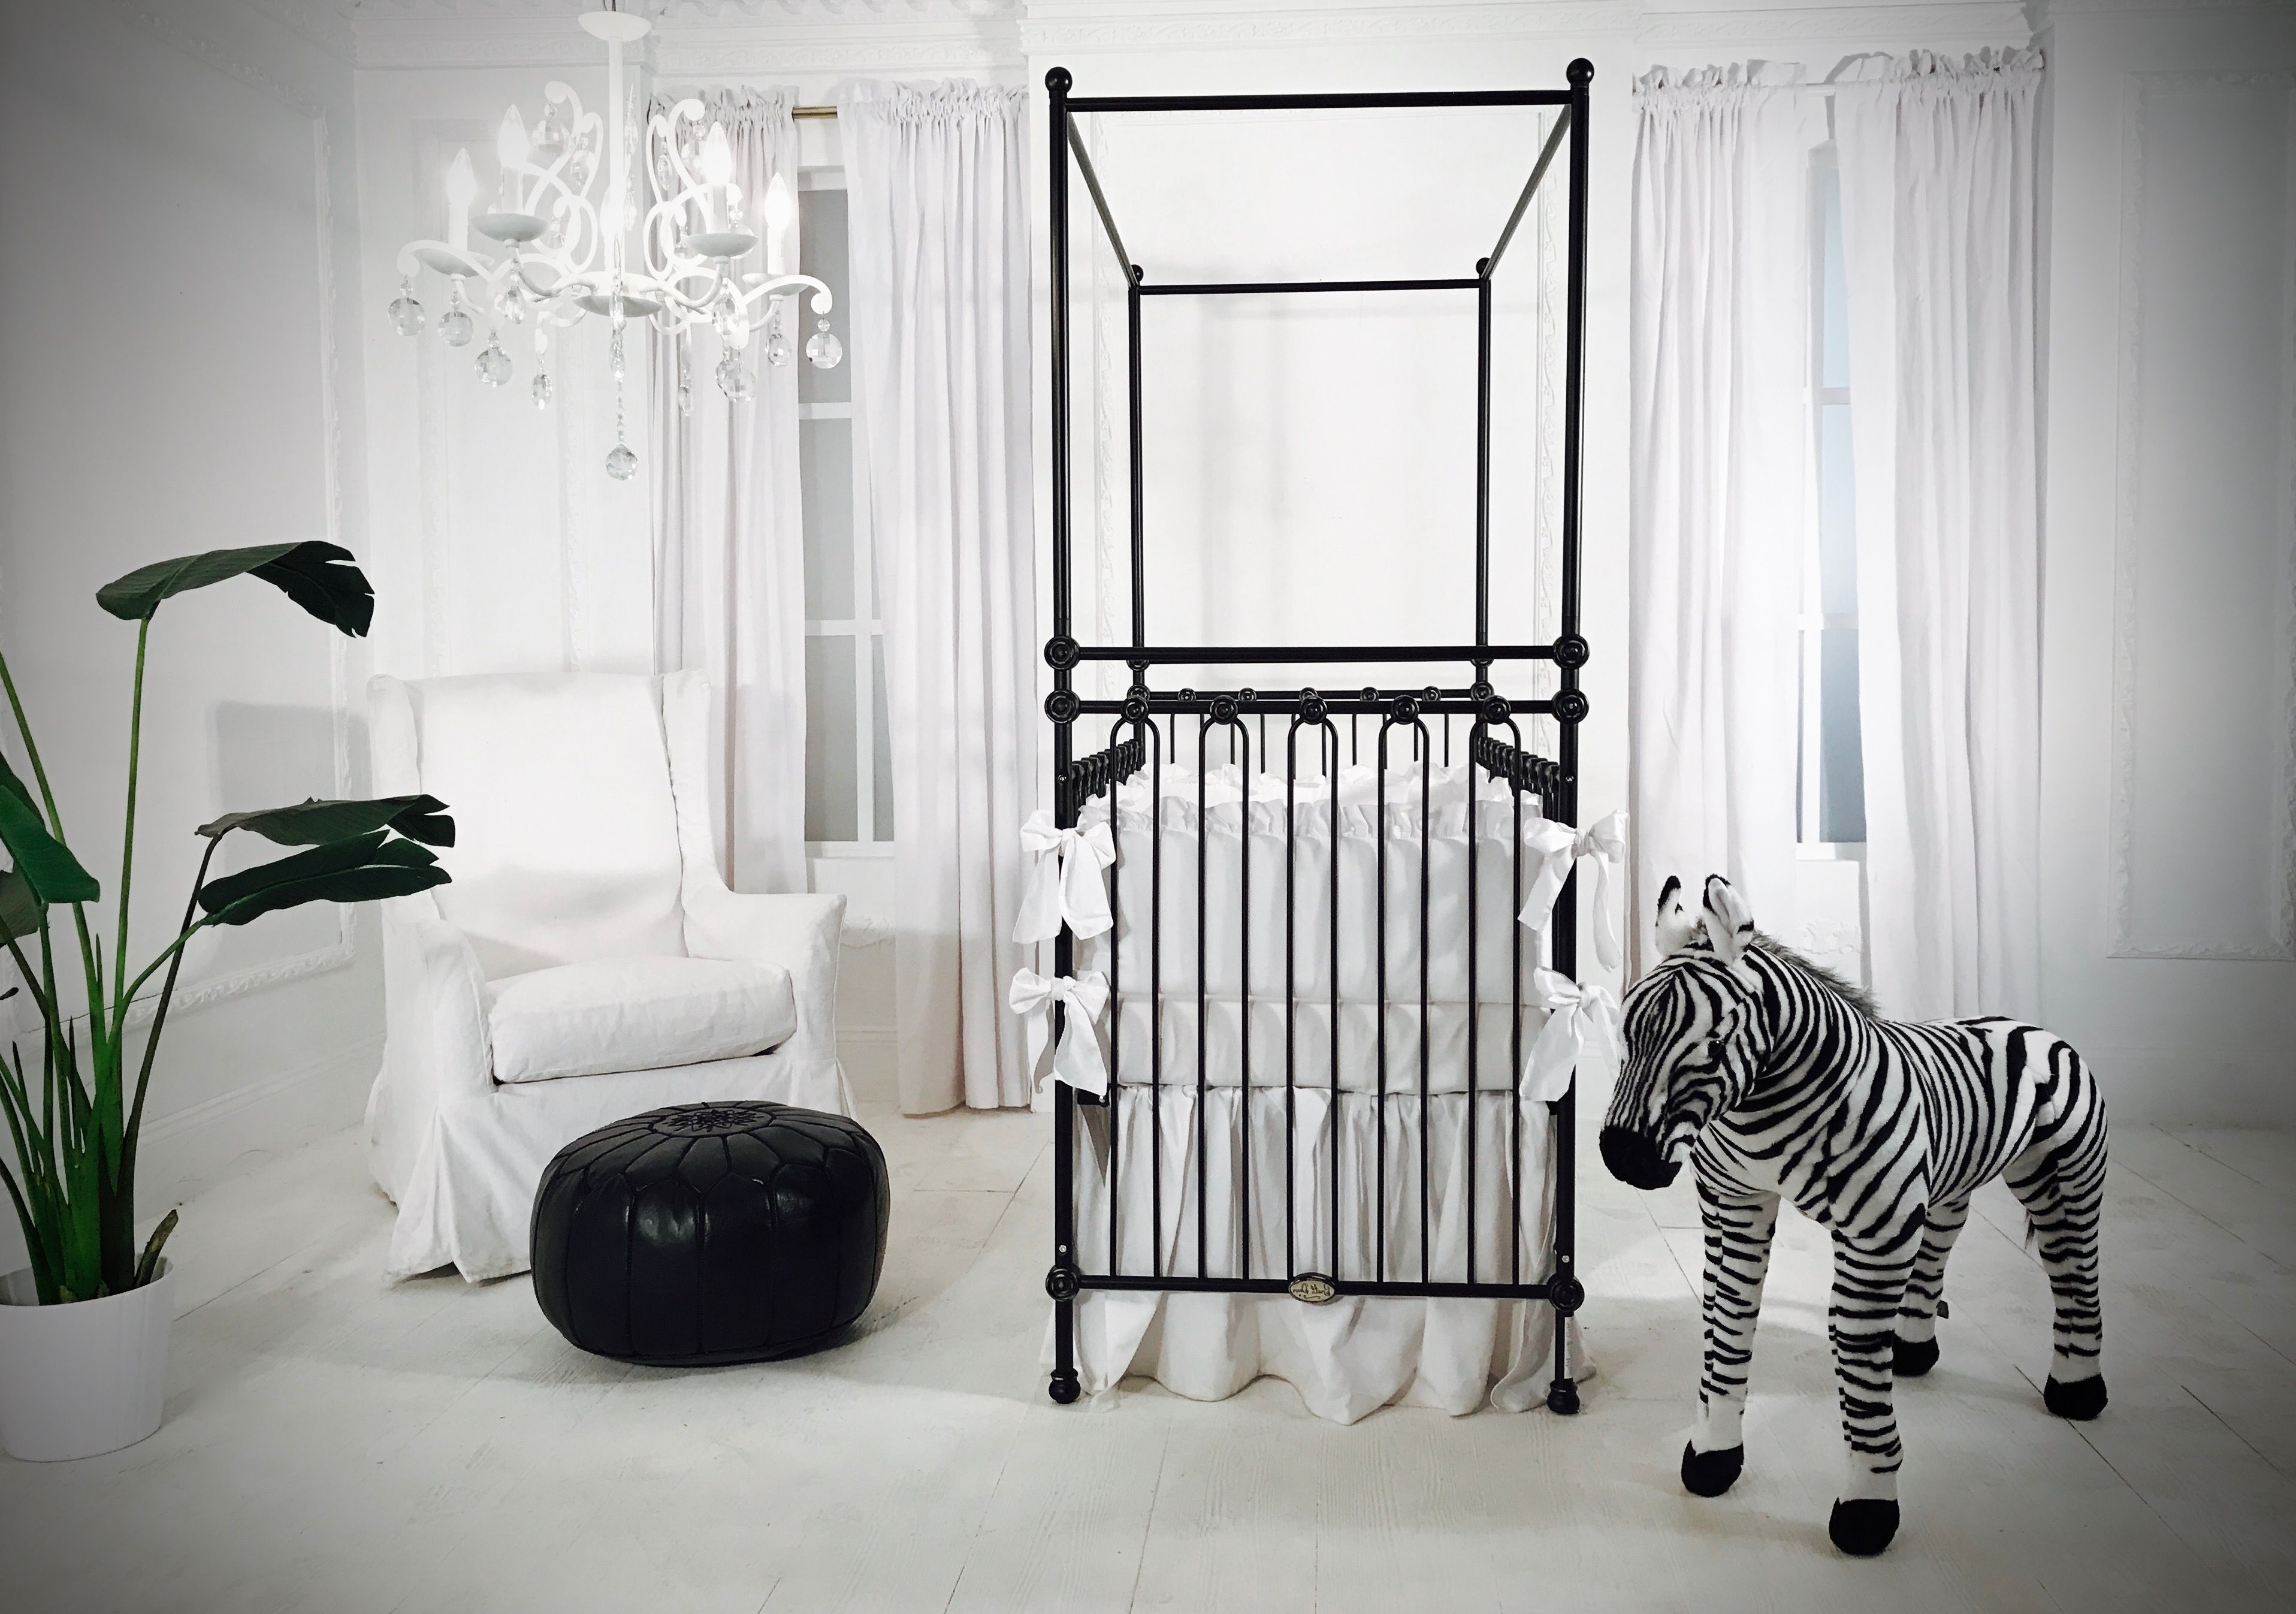 Iron Cribs Are Timeless And This Nursery In Black White Is To Die For Black Crib Nursery Iron Crib Black Crib